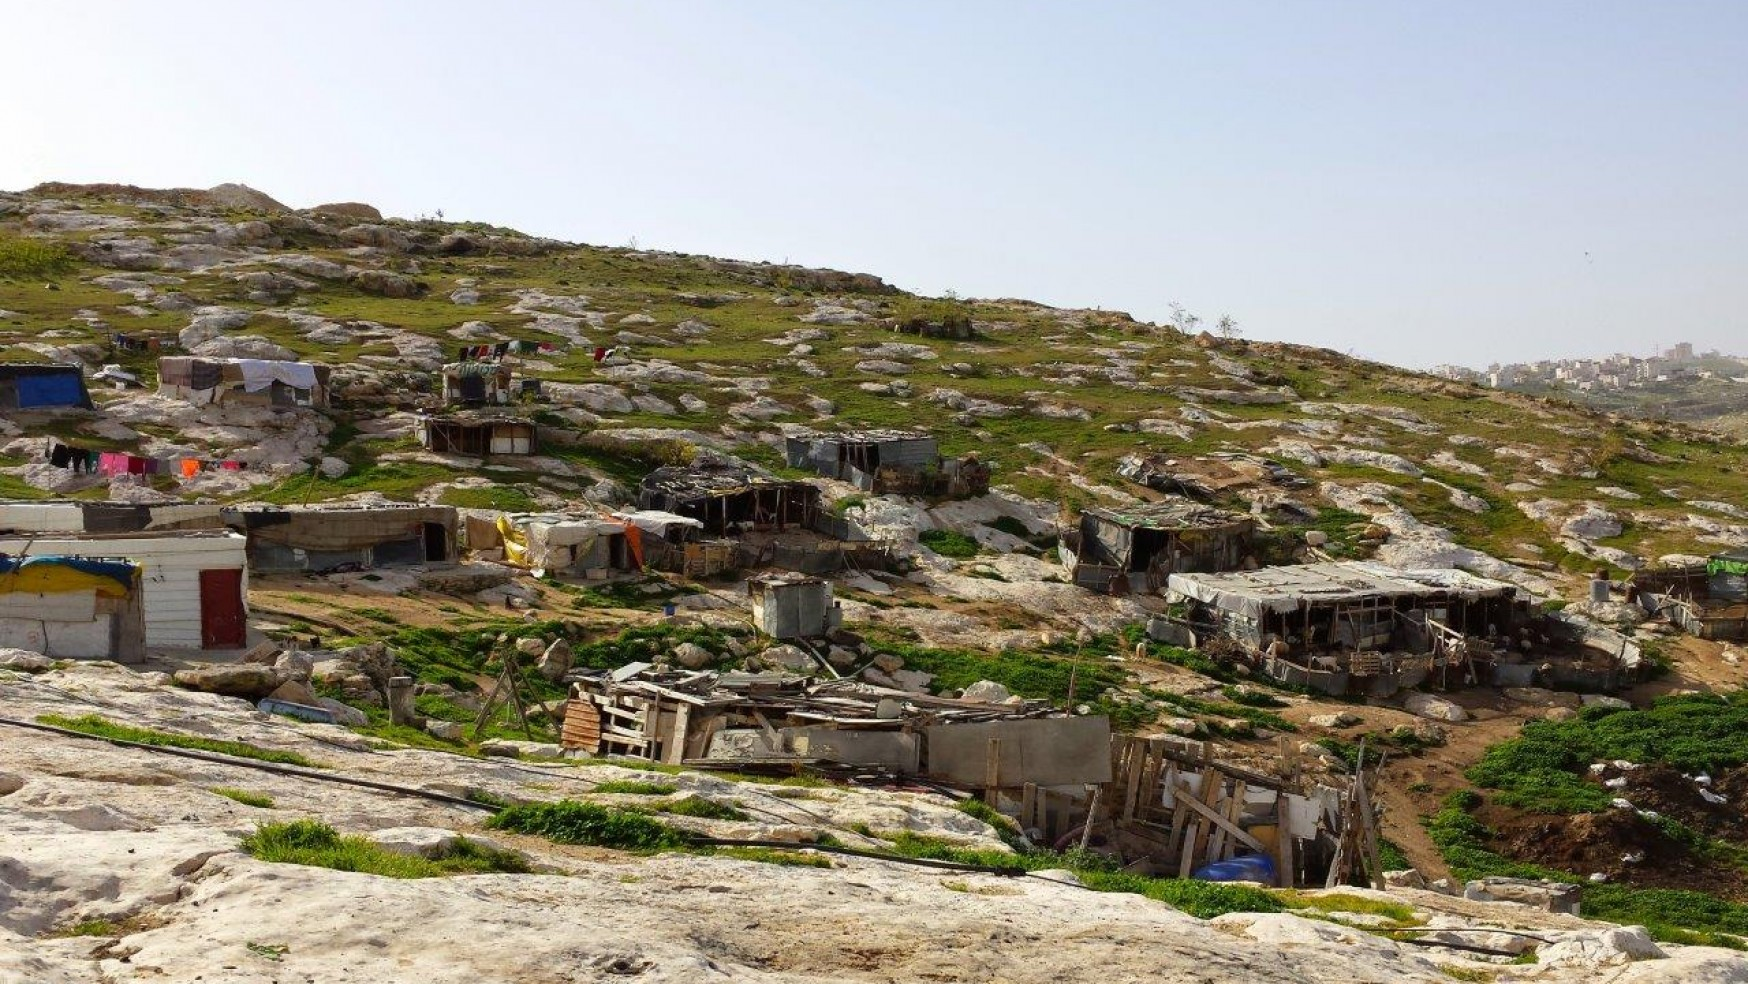 My Friend is a Palestinian Bedouin: V. Data Collection and Analysis